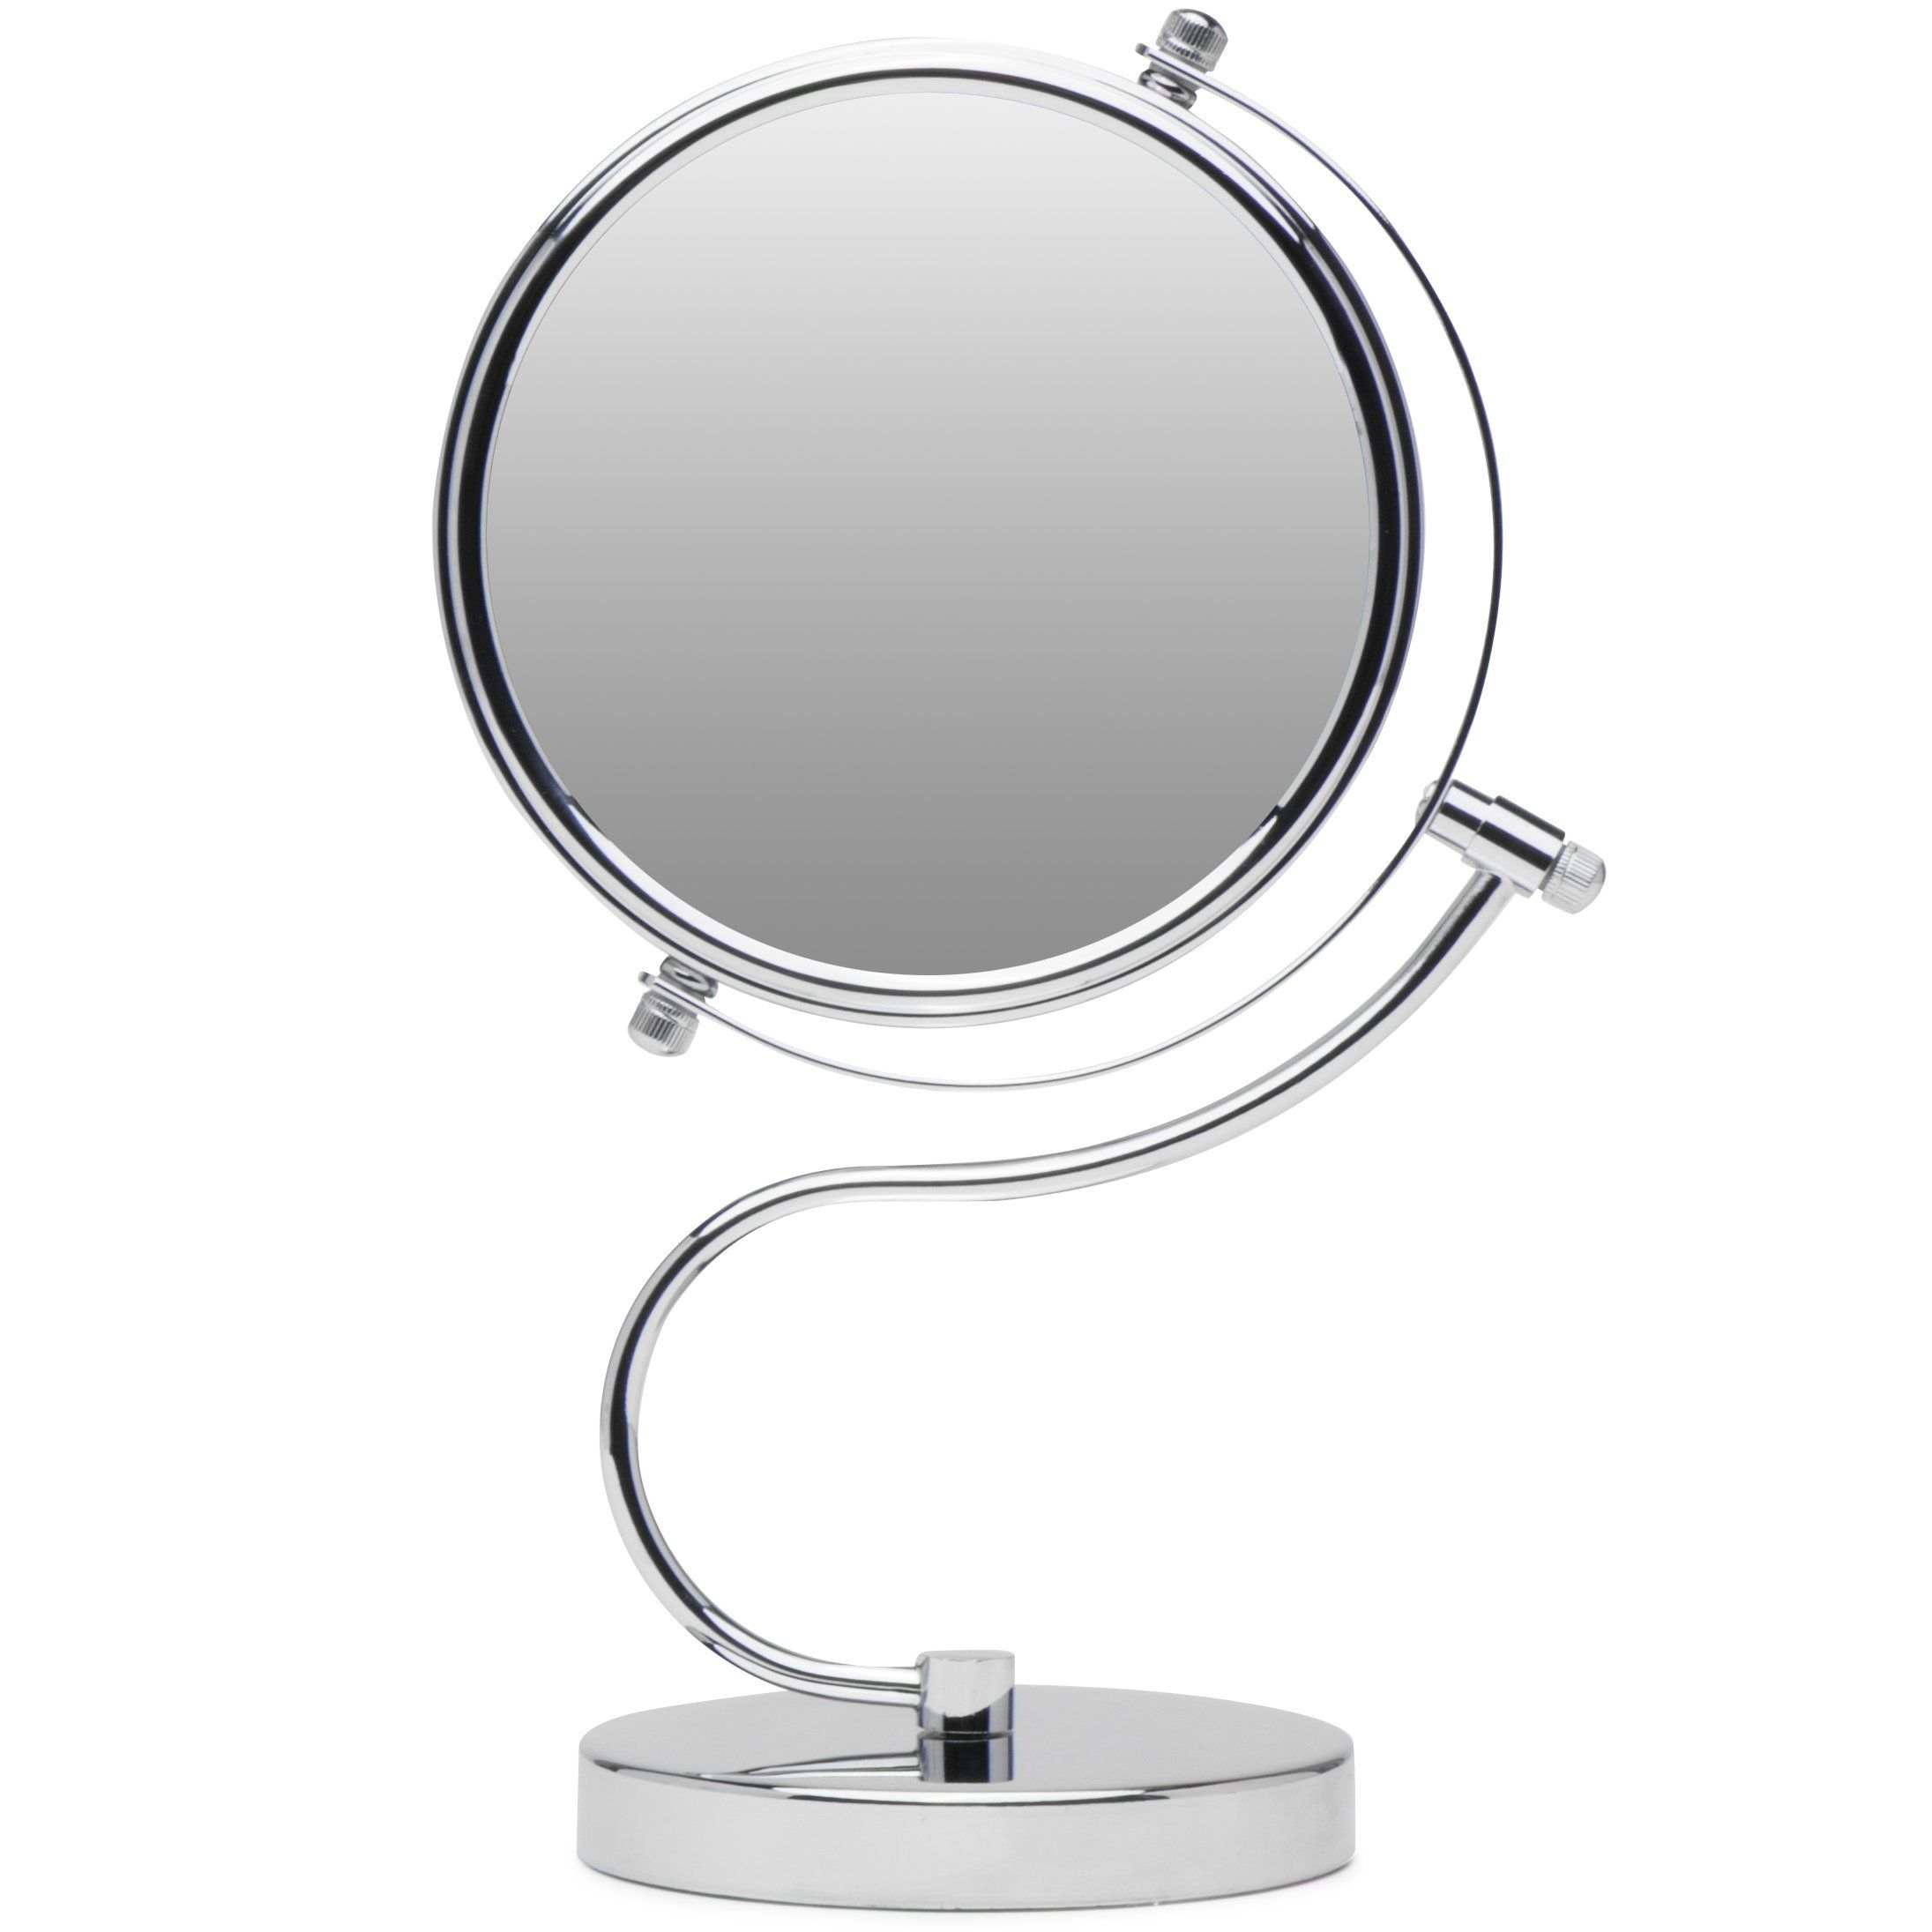 Cute N Curvy DoubleSided Makeup Mirror w/1x 10x